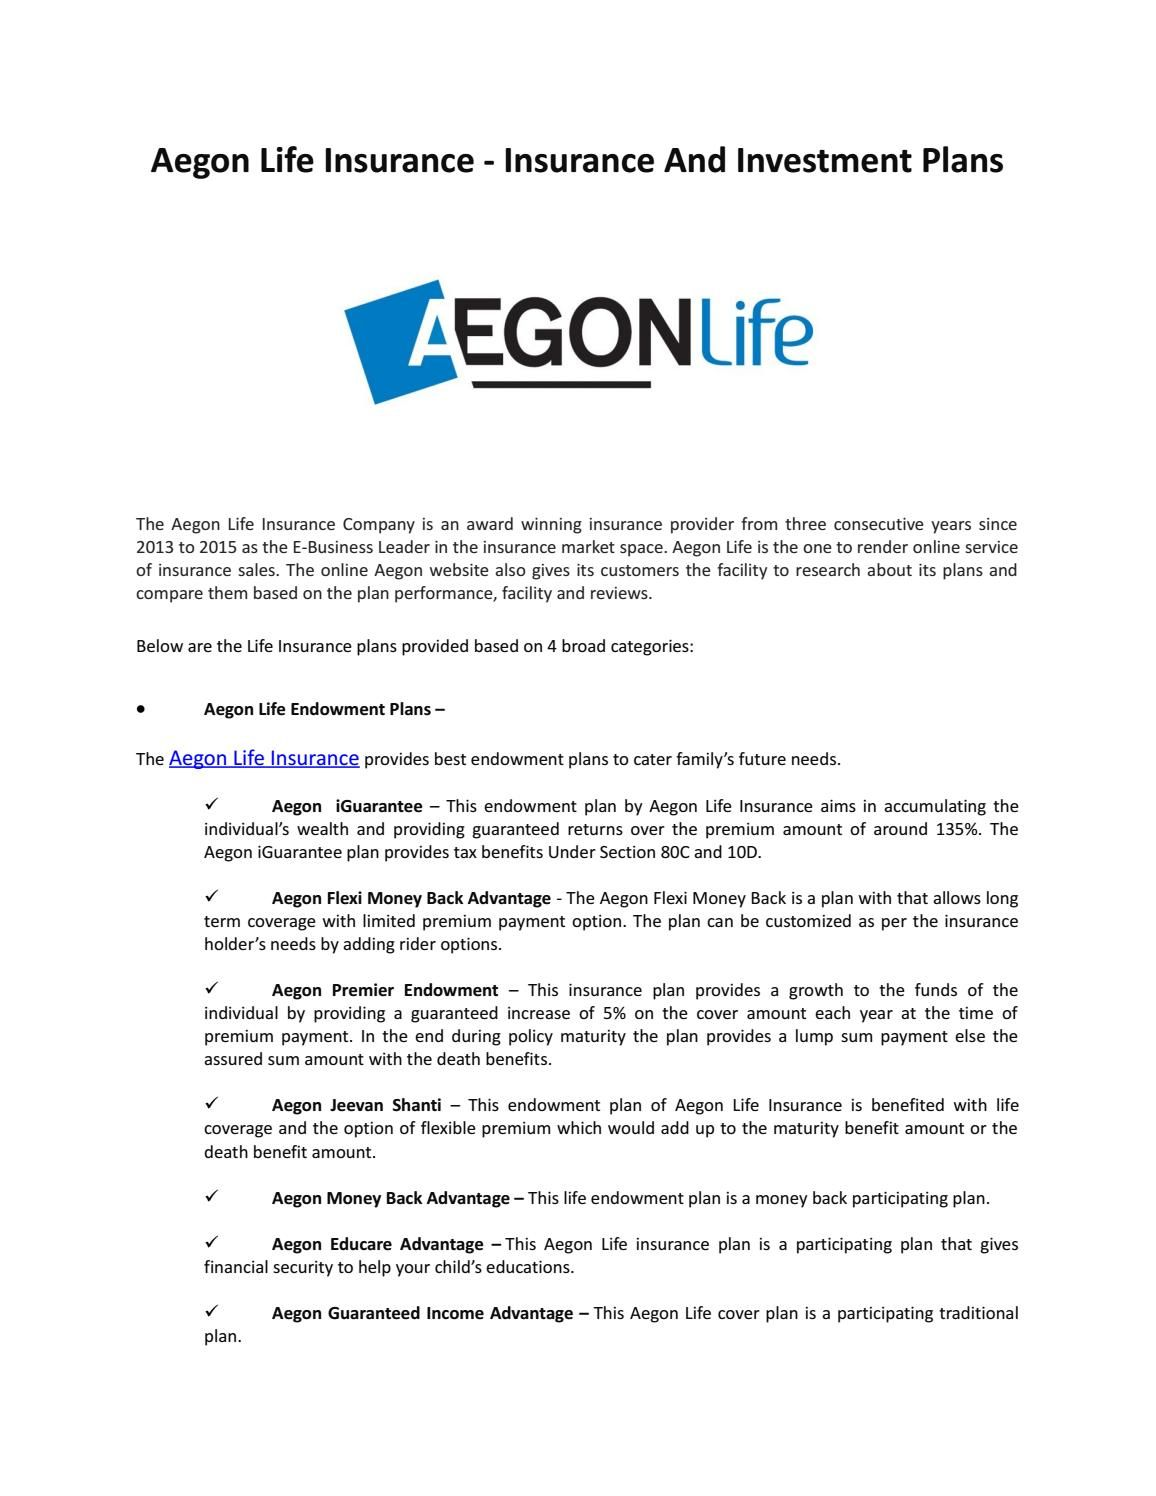 Aegon Secures Your Future Life Insurance Companies Insurance